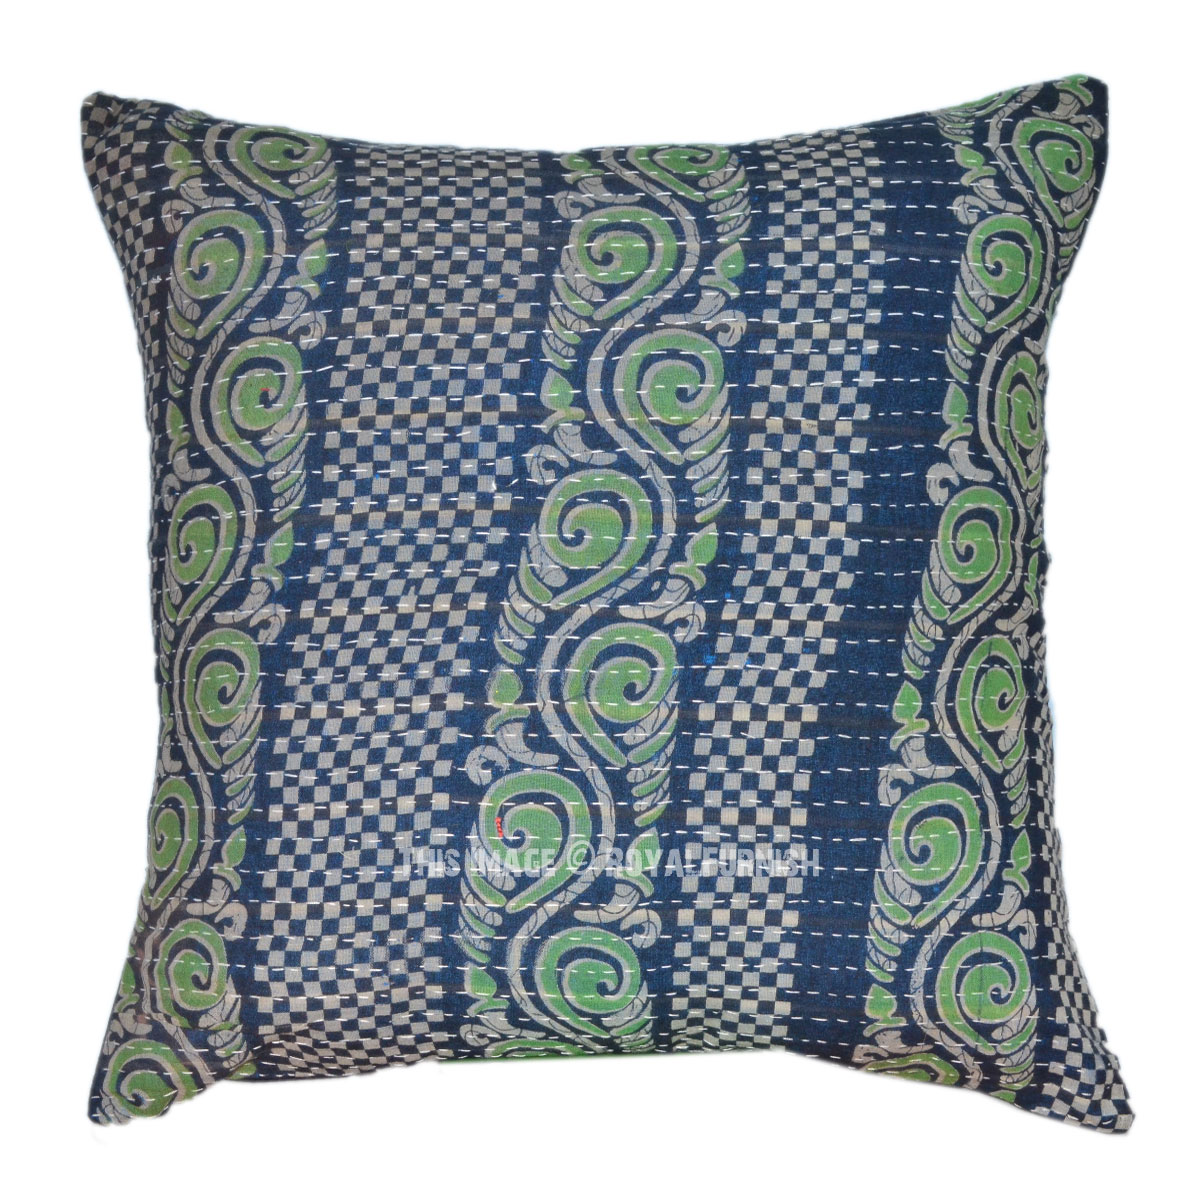 Decorative Quilted Pillow Covers : Decorative Outdoor Kantha Quilted Pillow Cover - RoyalFurnish.com